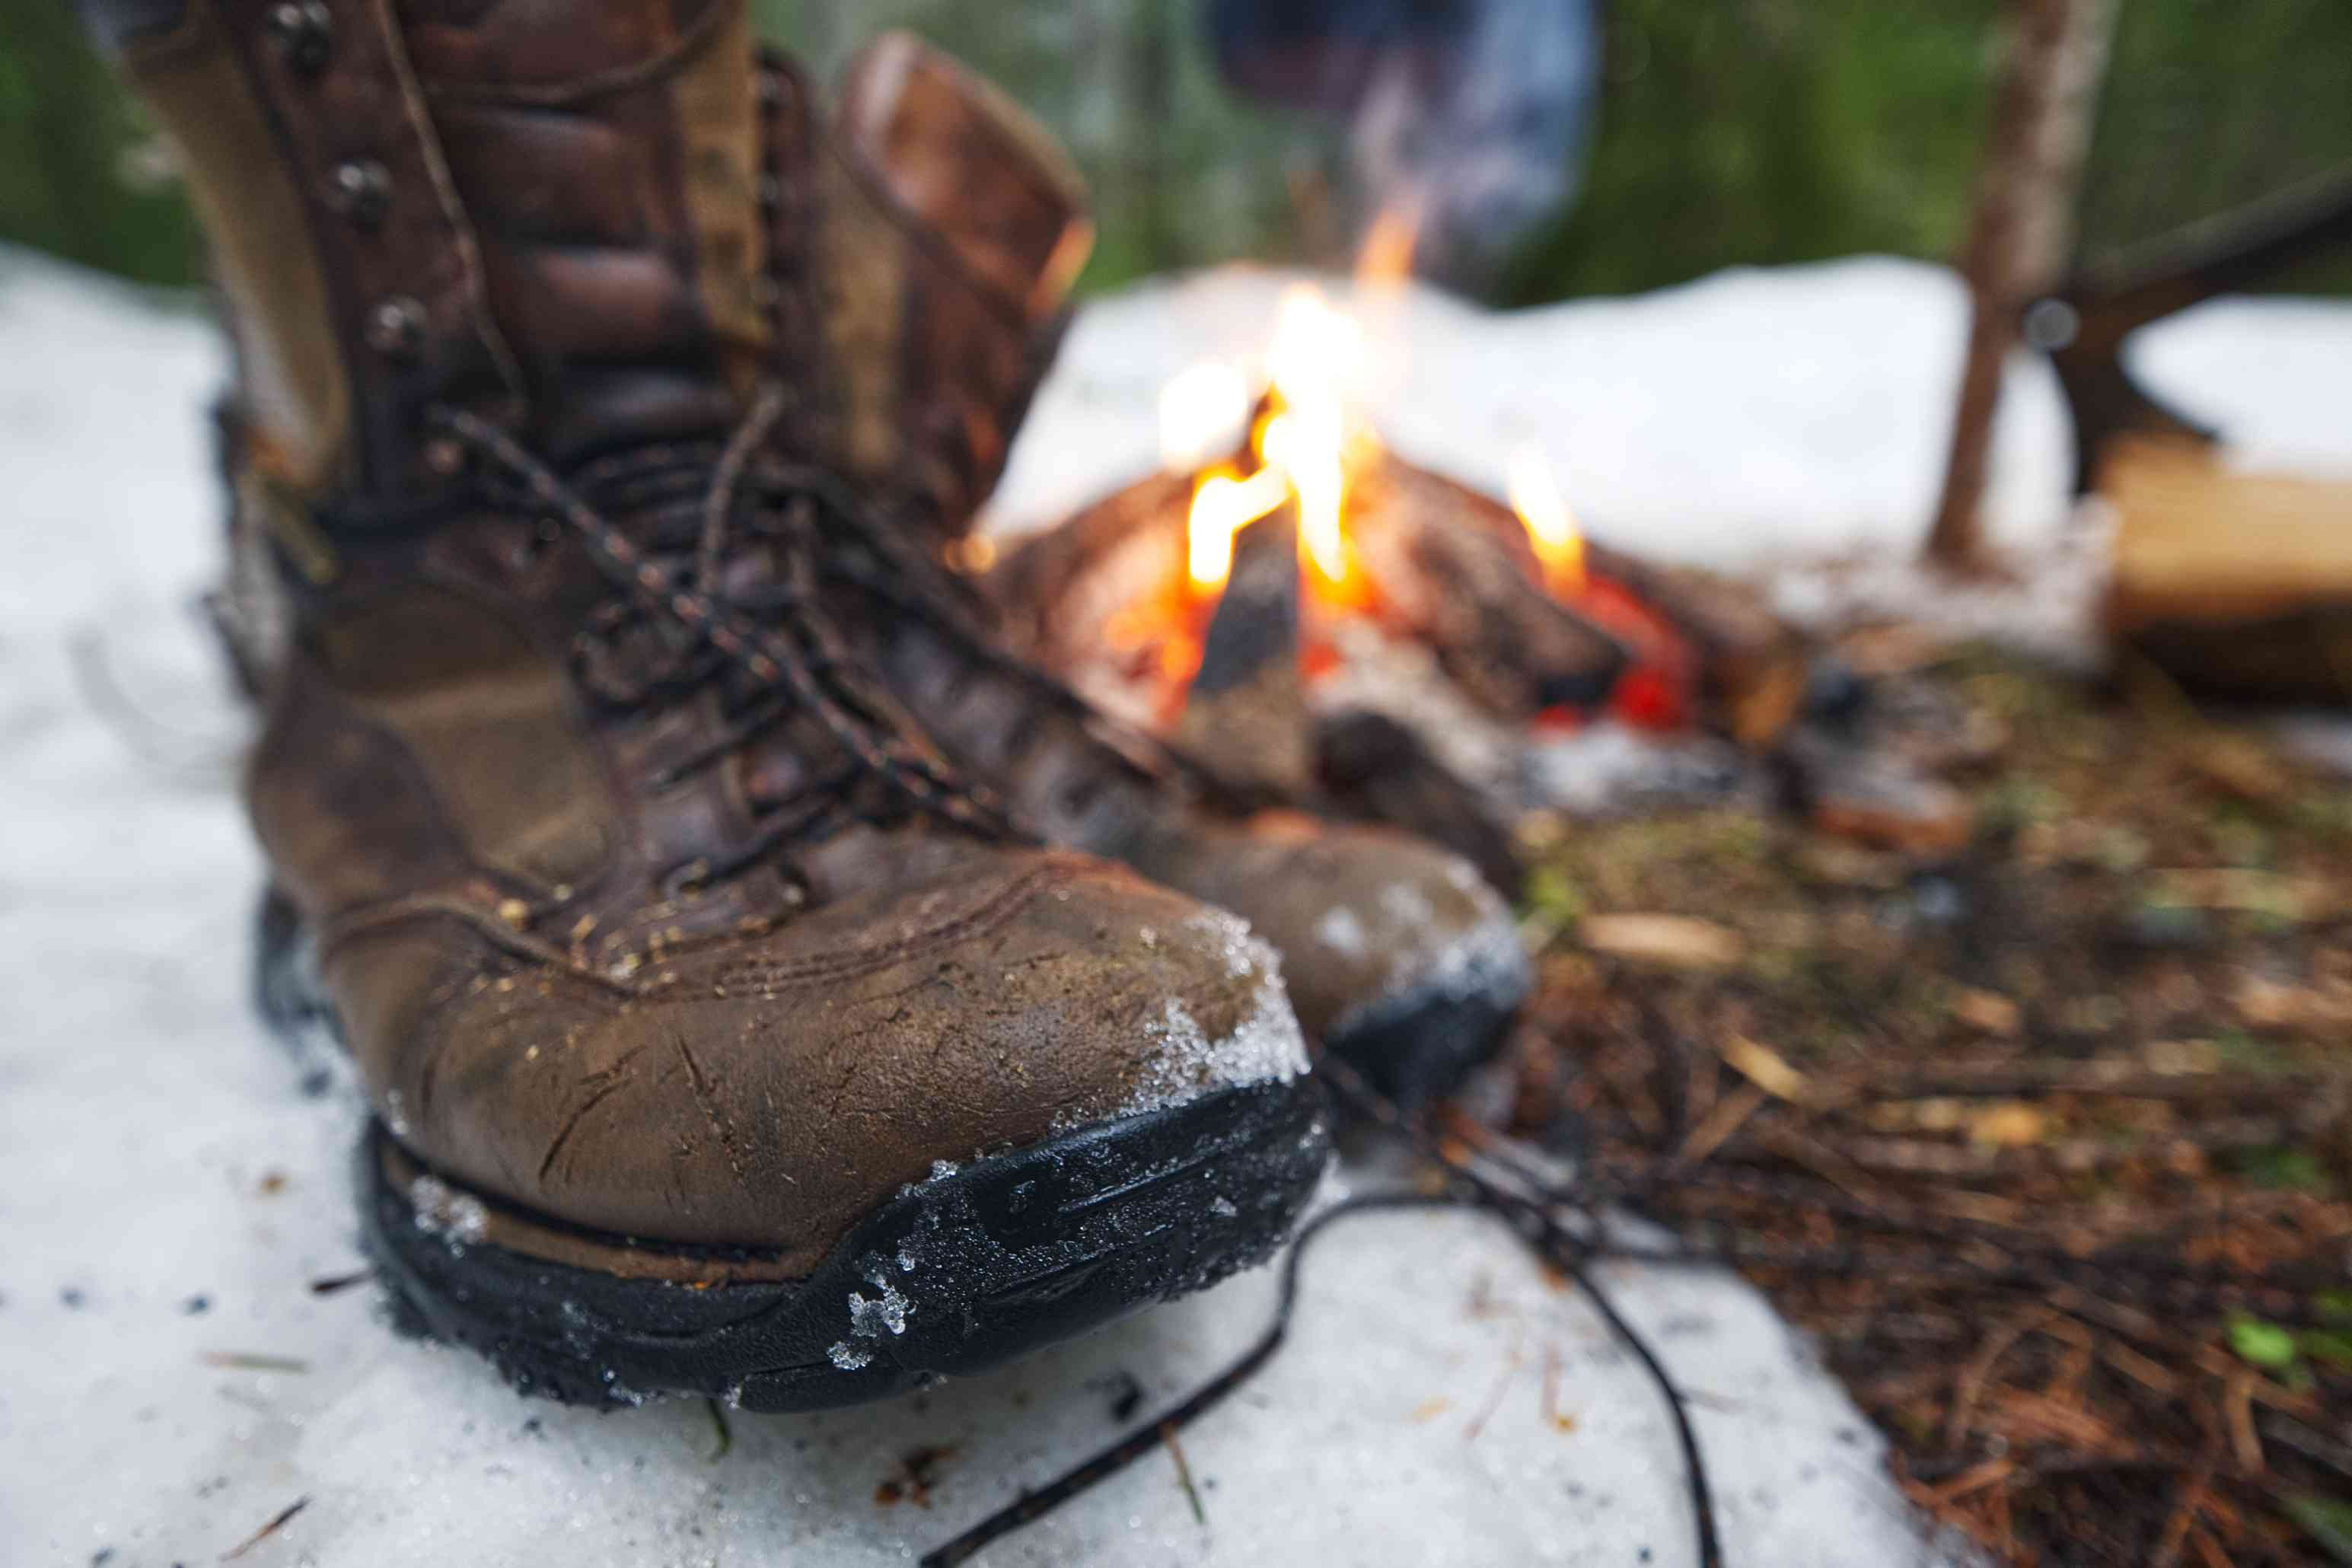 snowy boot next to campfire outside